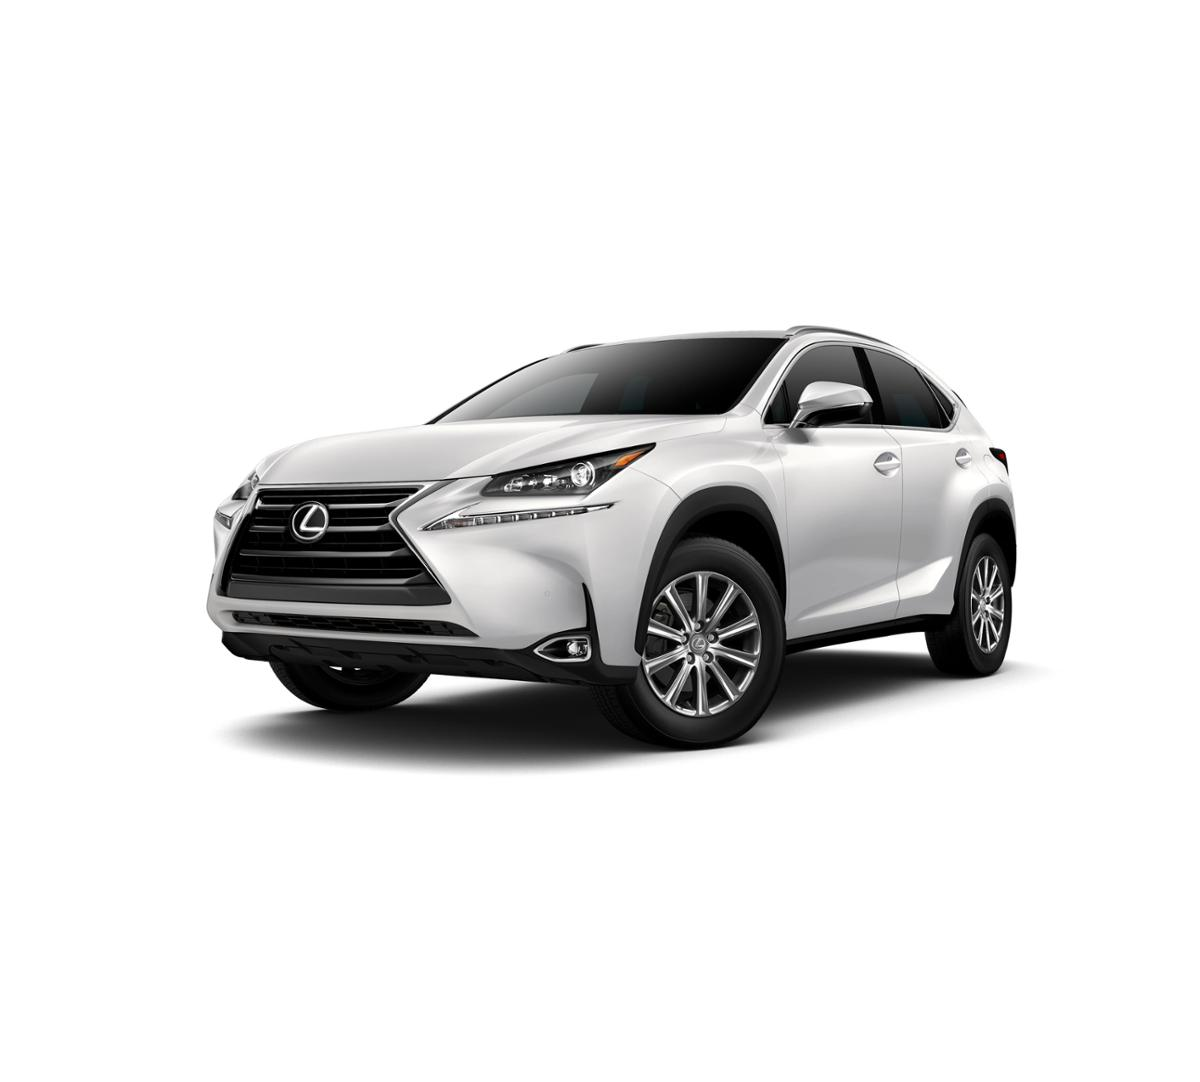 2017 Lexus NX Turbo Vehicle Photo in Santa Monica, CA 90404